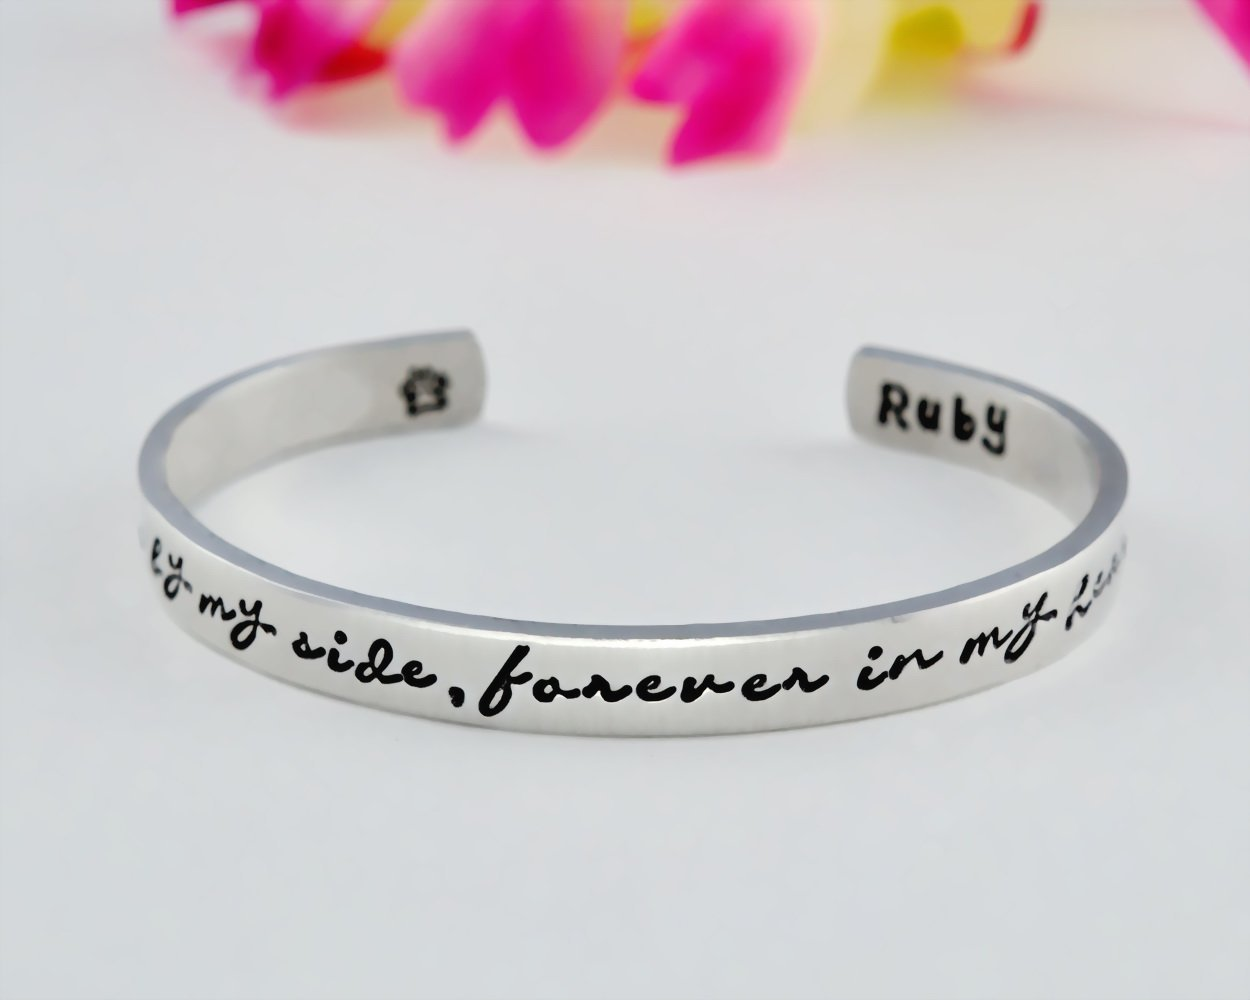 Once by My Side, Forever in My Heart - Hand Stamped Aluminum, Copper or Brass Cuff Bracelet, Pet Memorial Name, Dog Paw Print, Personalized Pets Owner Gift